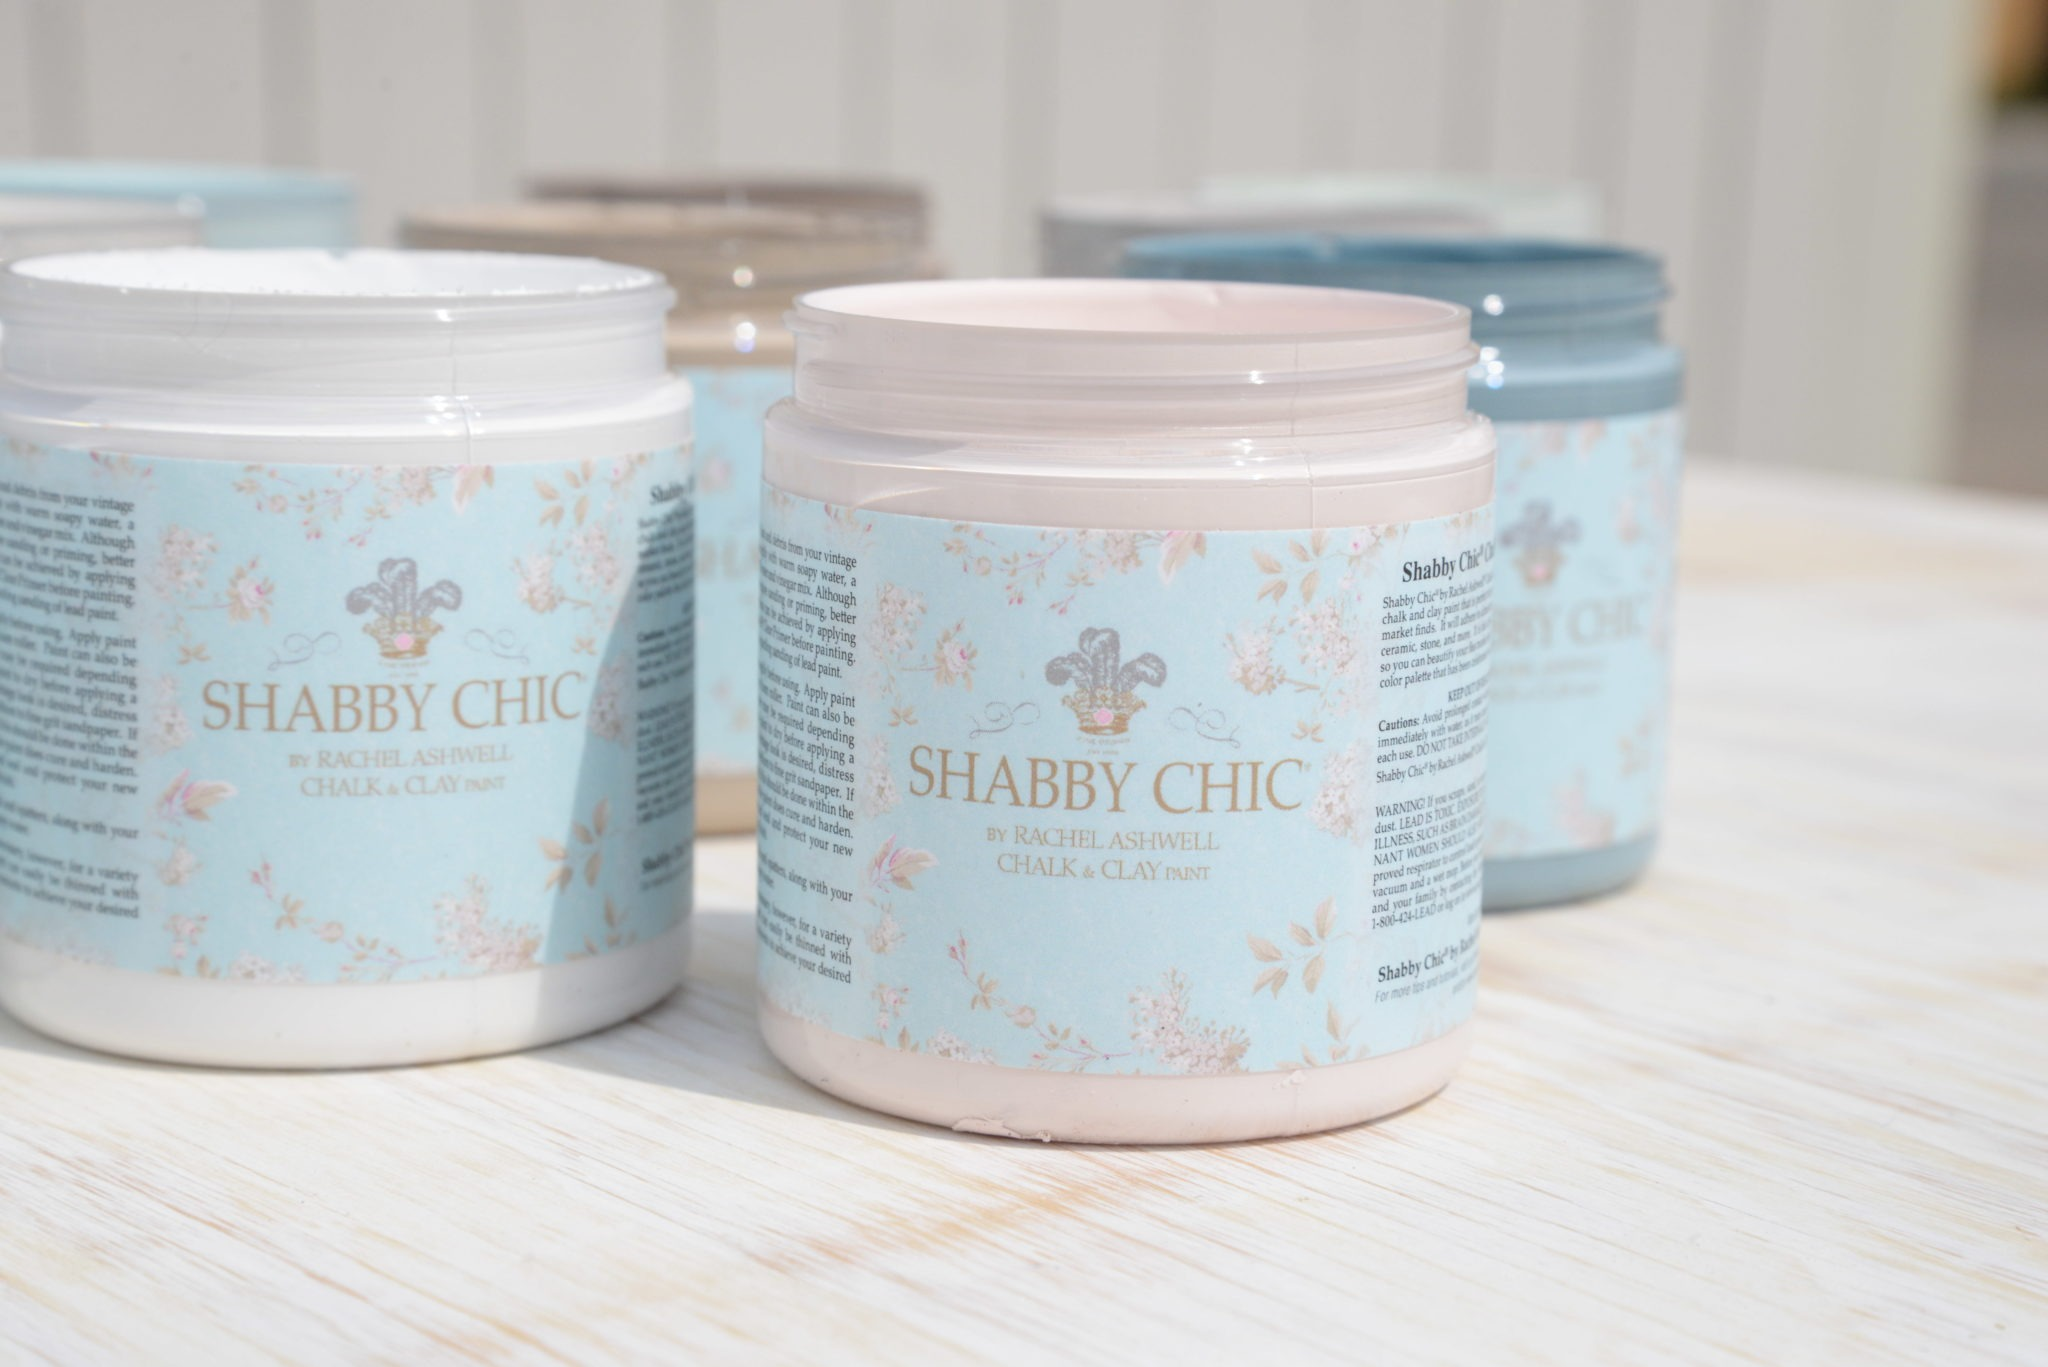 Shabby Chic Colors For Walls : Shabby chic by rachel ashwell paint samples bungalow